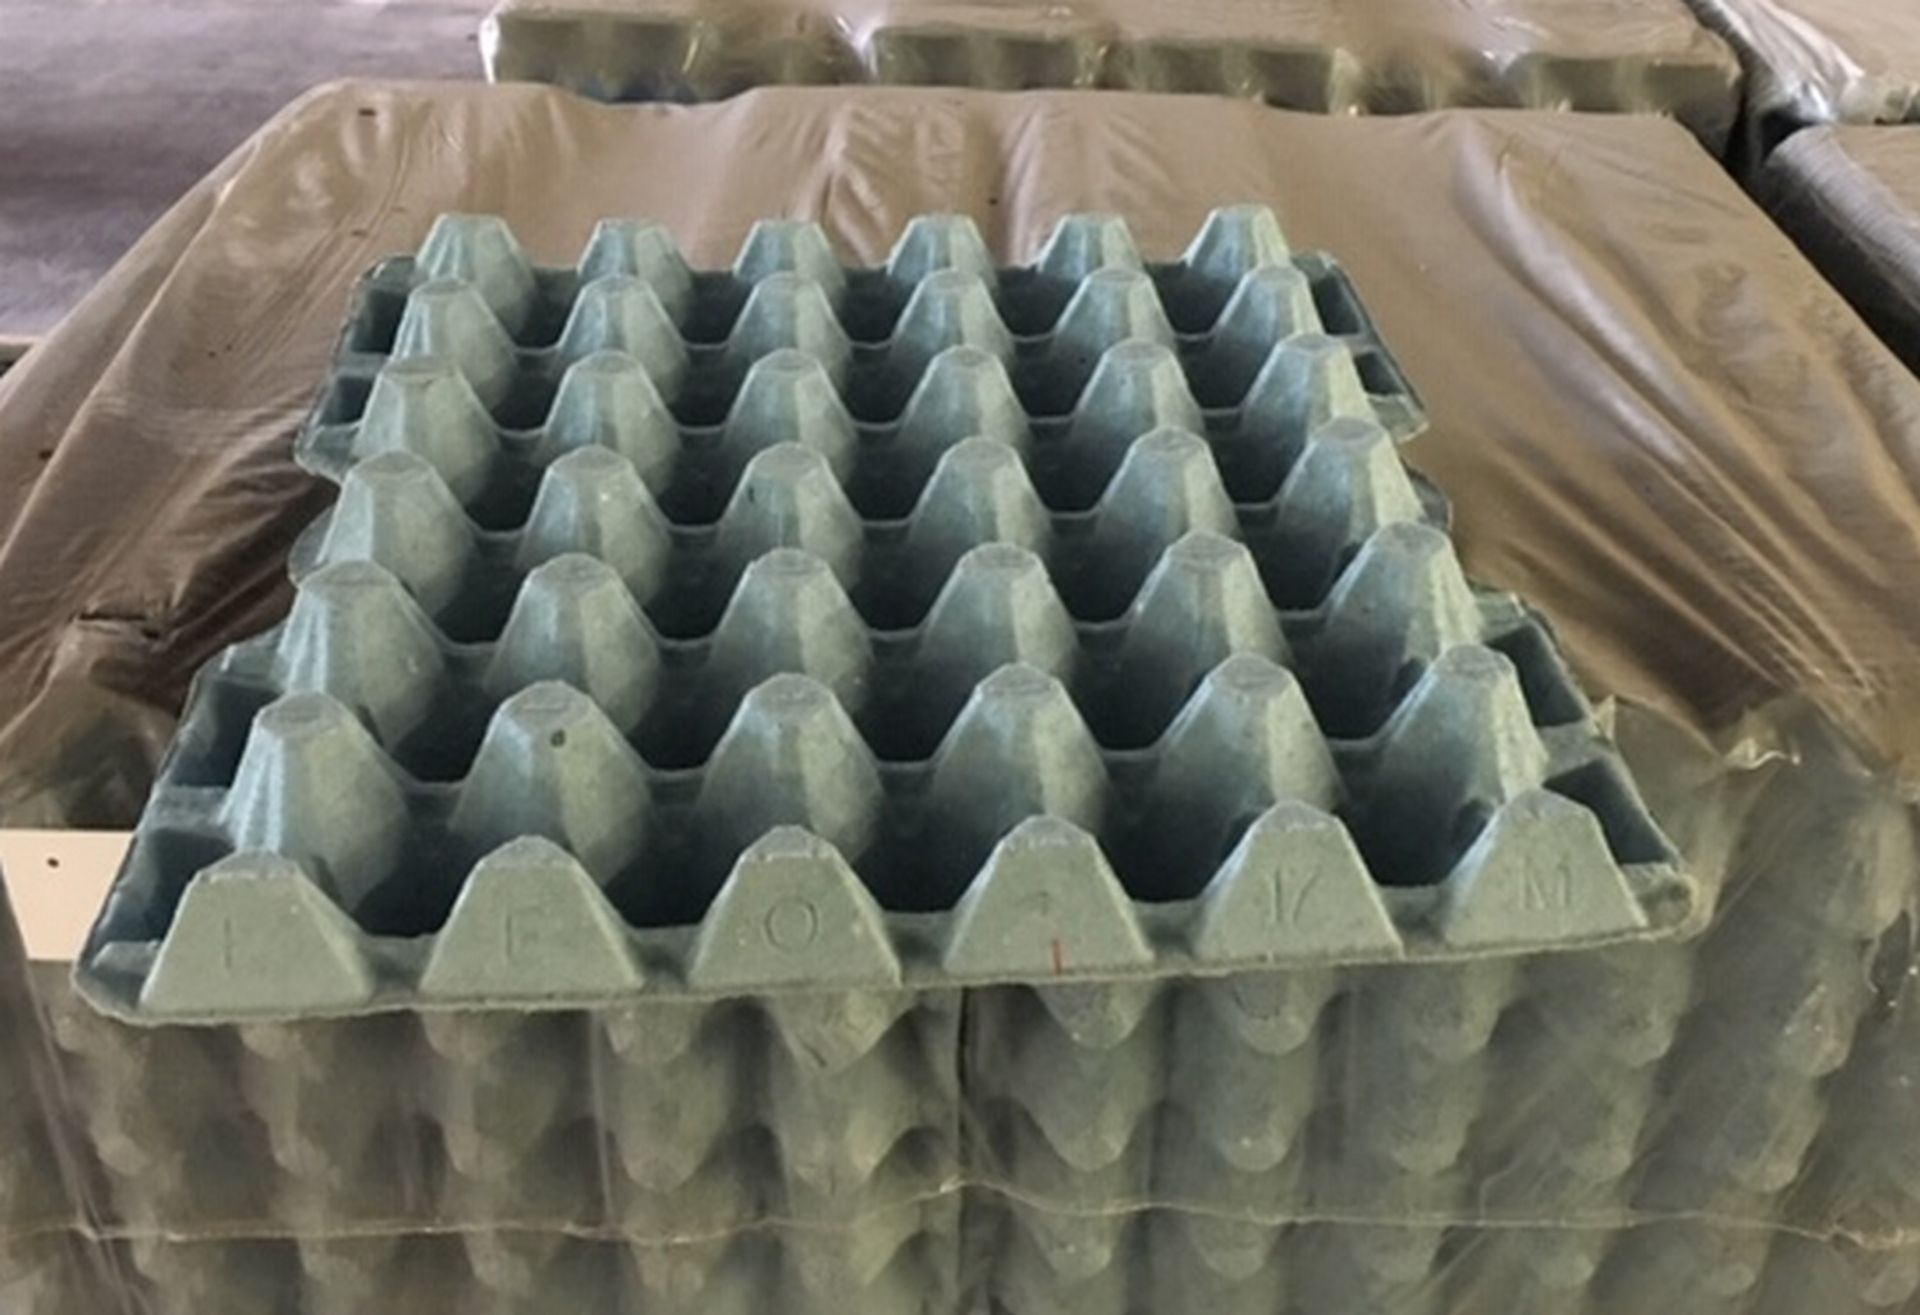 Lot 120 - Pallet of 16 Lots of Egg Containers (36 Eggs) 160 Trays in each Lot.